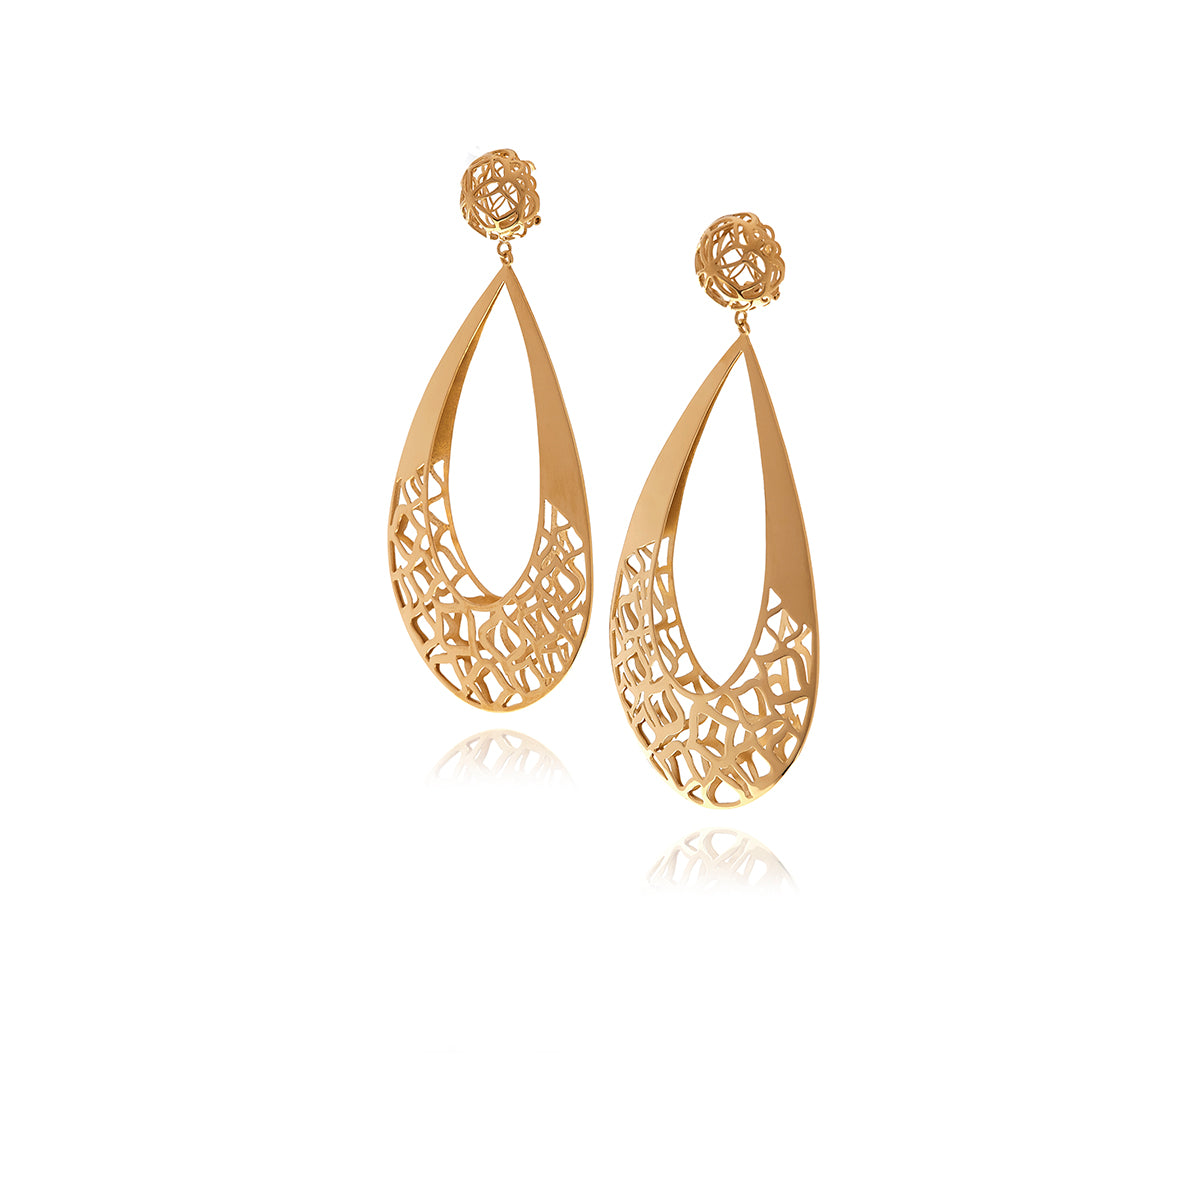 Runway Gold Drop Earrings - MCK Brands